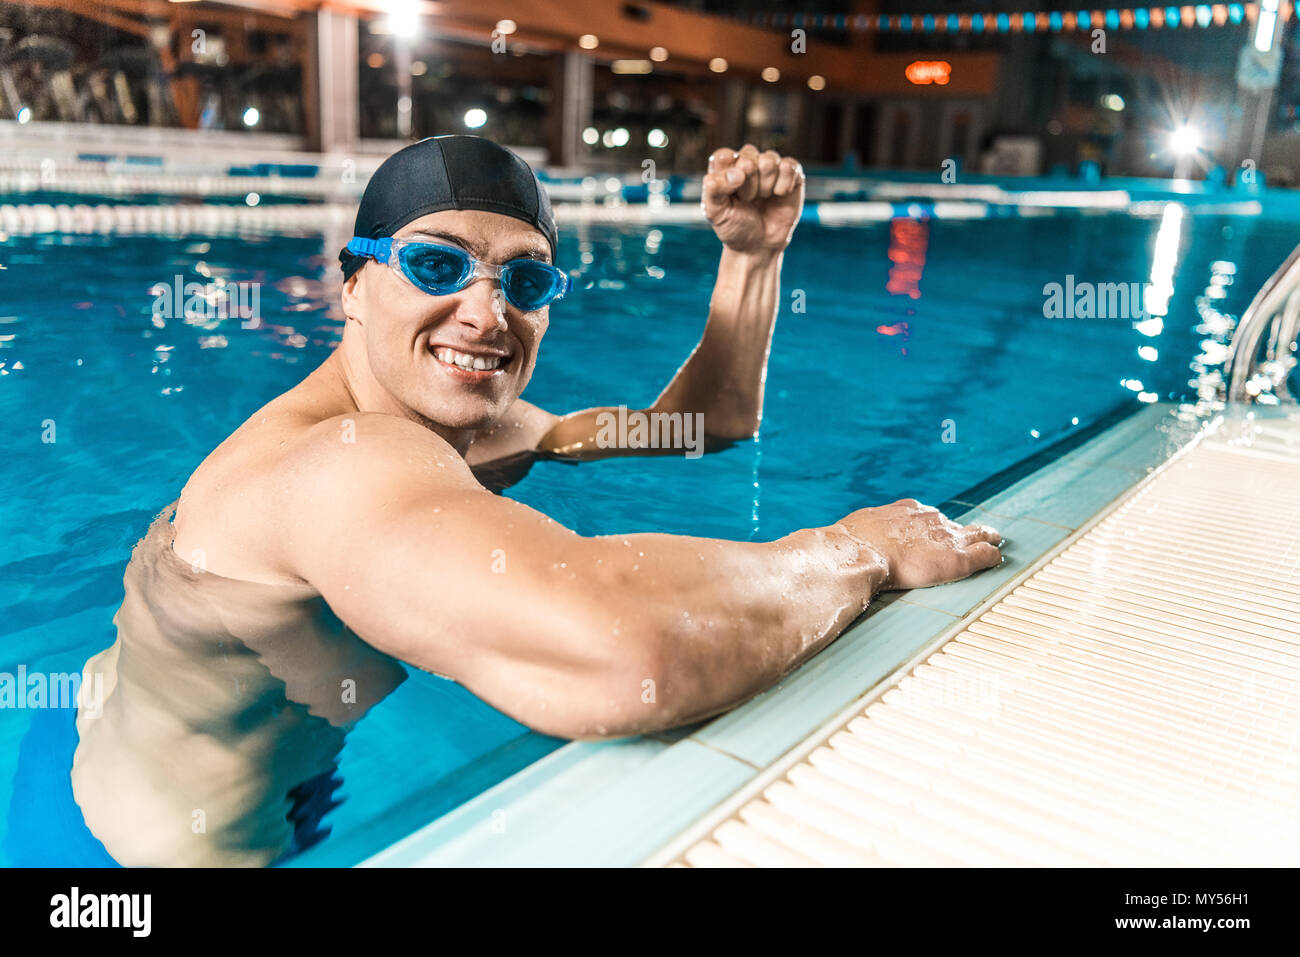 smiling swimmer gesturing and win in swimming pool - Stock Image